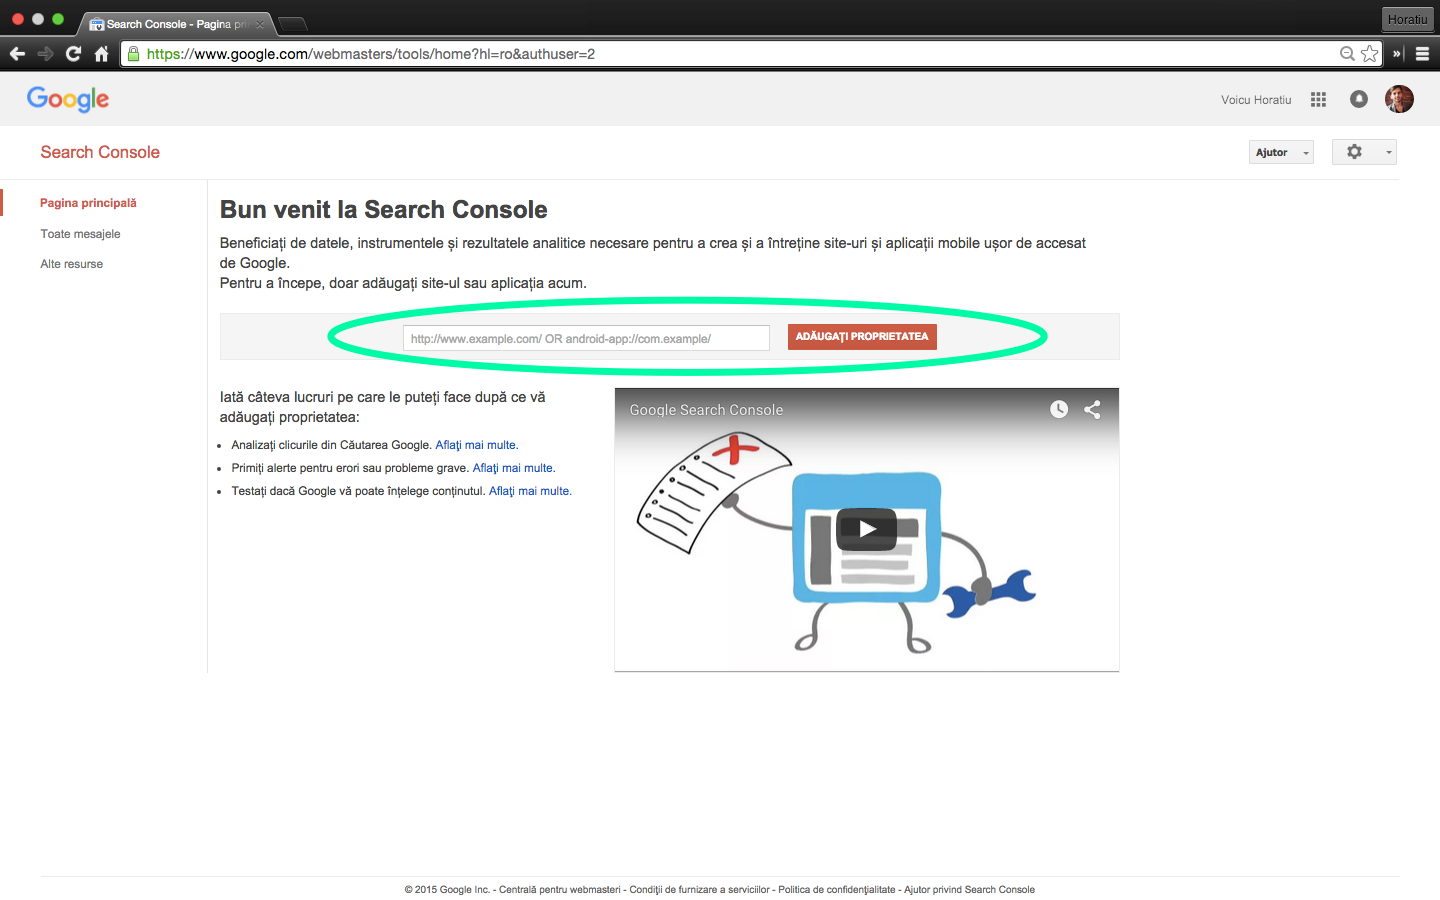 google search console - adaugare proprietate